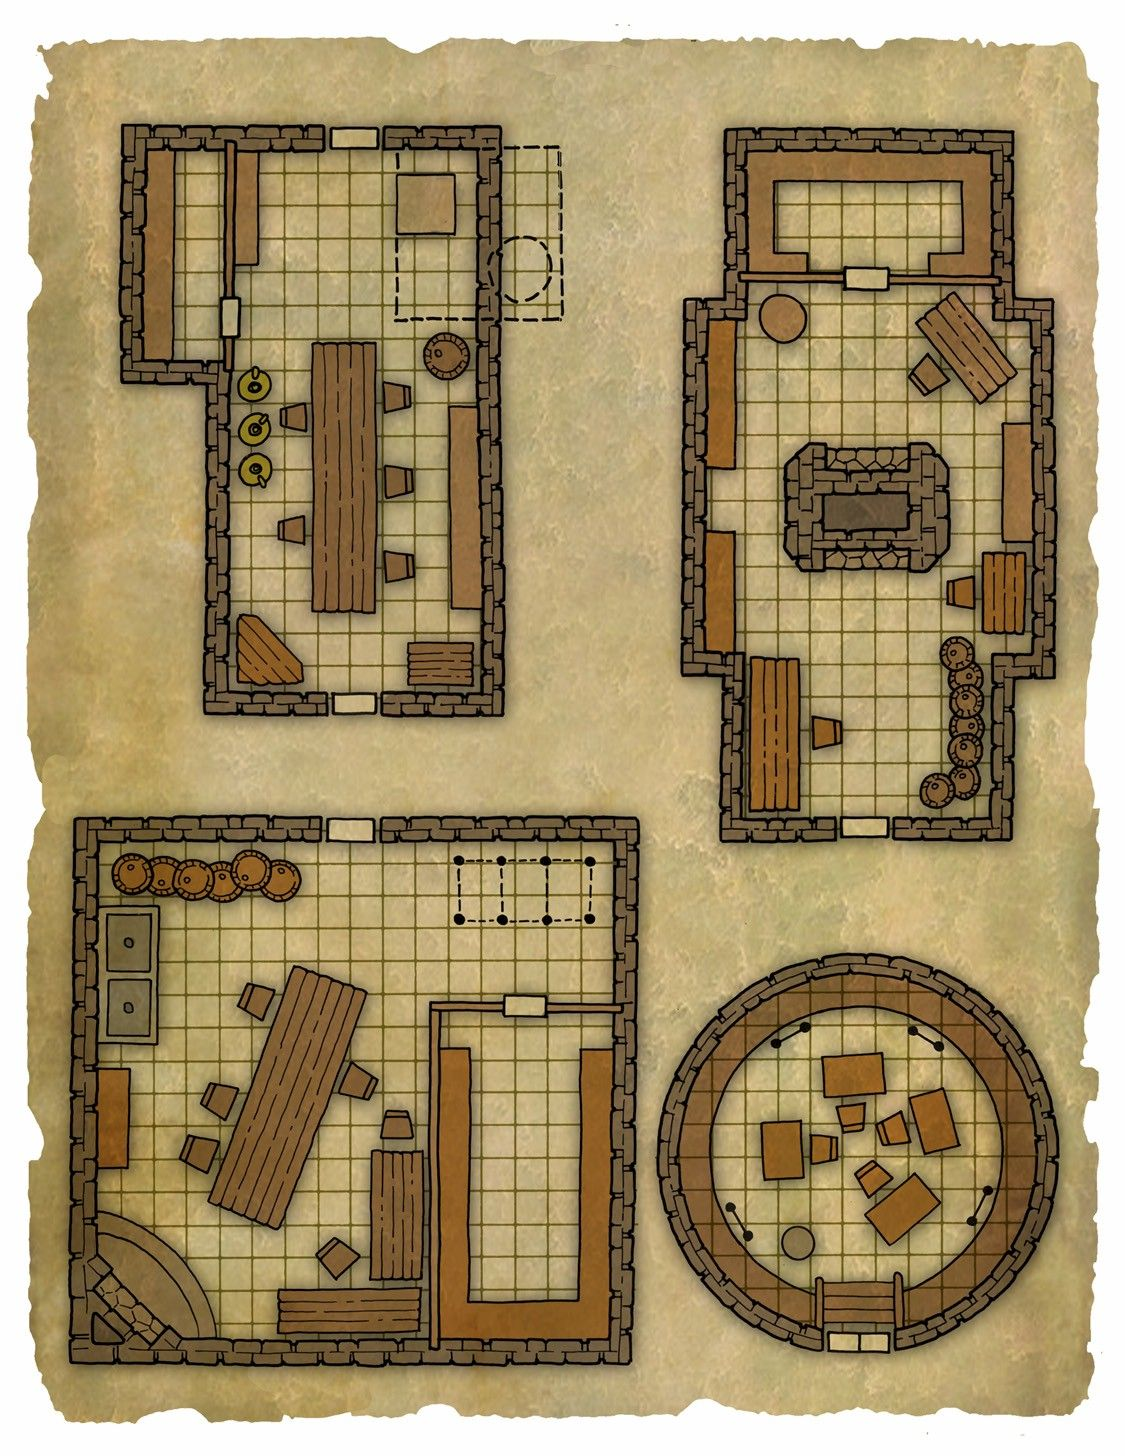 Pin by rasmus hejlesen on battlemaps pinterest rpg and for Floor 2 dungeon map